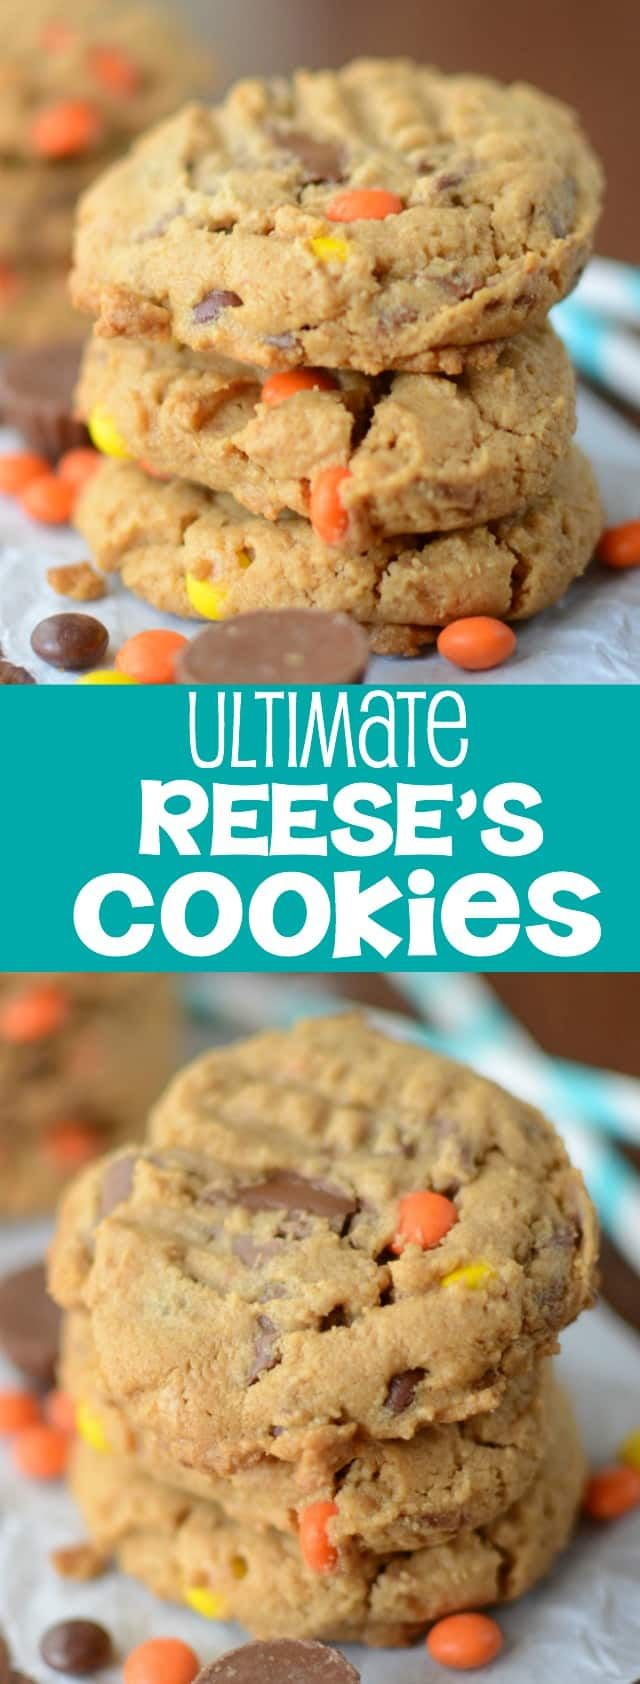 The ULTIMATE Reese's Cookies - easy peanut butter cookies FILLED with tons of Reese's peanut butter cups and Reese's Pieces! AND they're accidentally gluten-free!